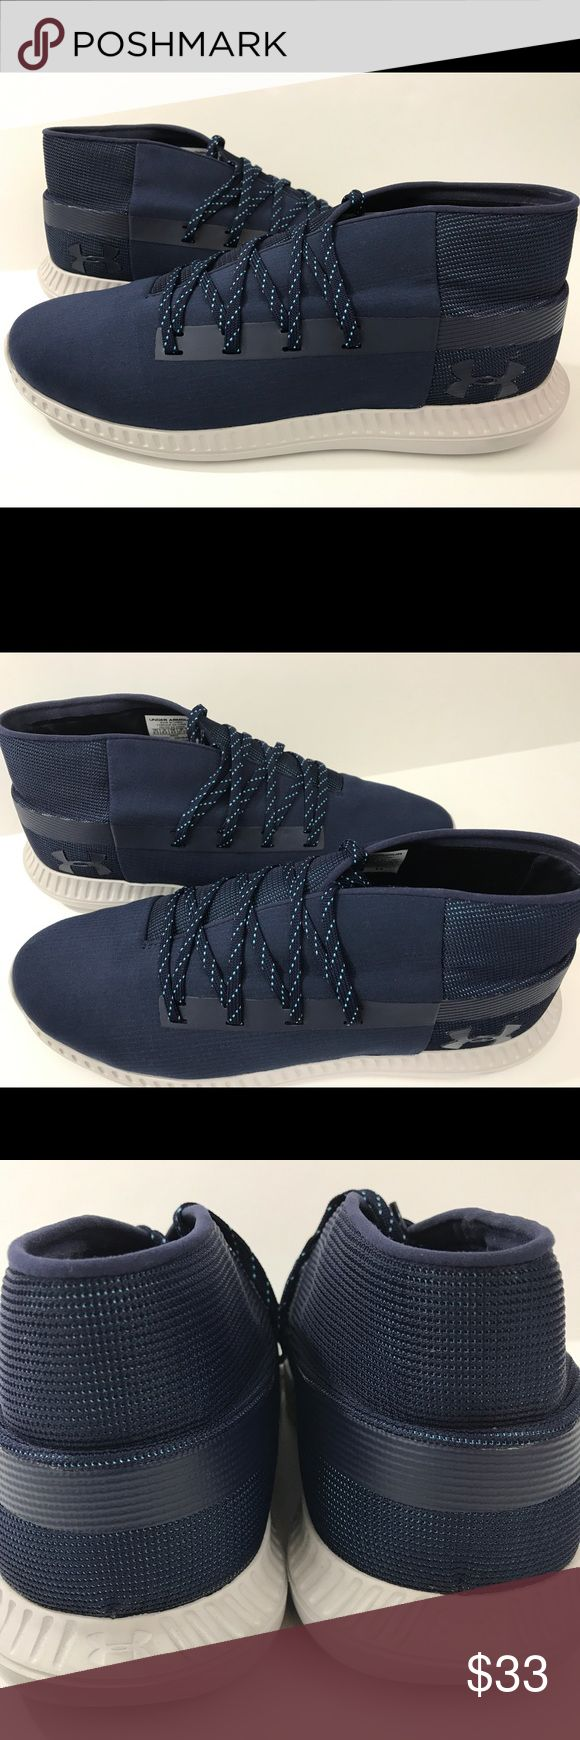 Under Armour UA VELOCE mid top basketball size 9.5 Under Armour mid top basketball shoe Navy blue New, No Box Size 9.5 Exactly as pictured  2-3 days to your door!! 😁😁😁 Under Armour Shoes Athletic Shoes